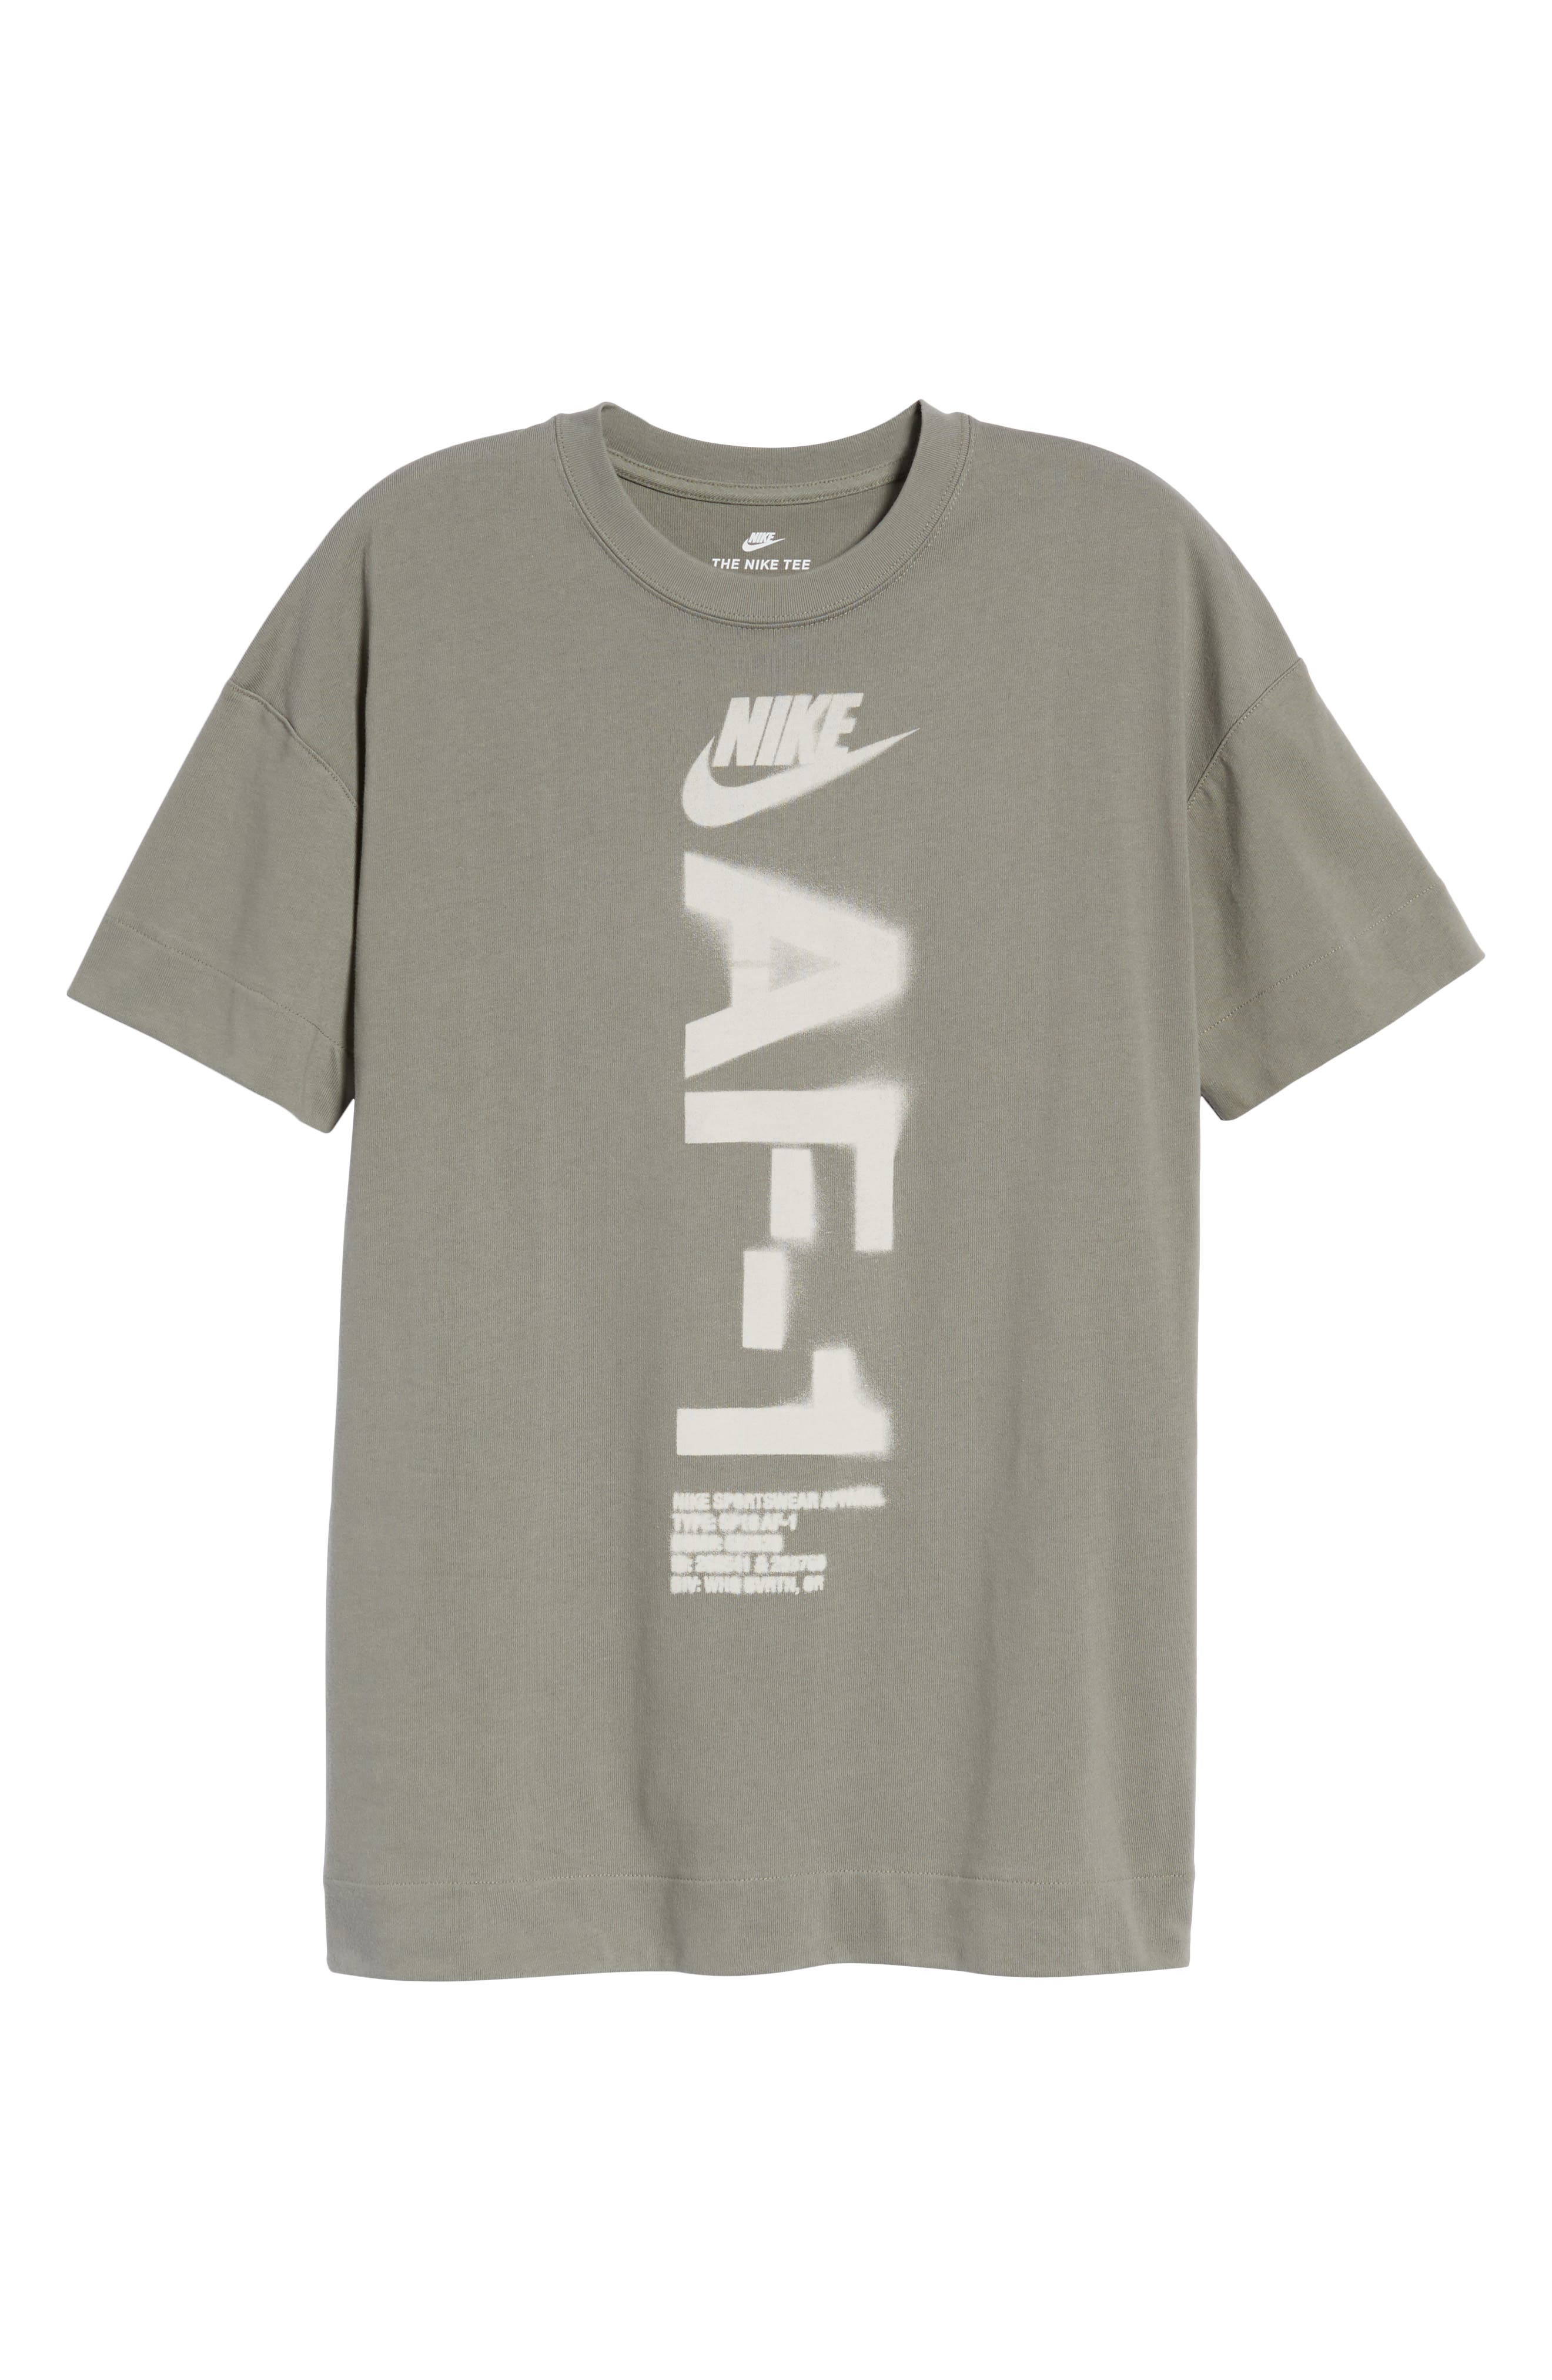 NSW Heavyweight AF-1 T-Shirt,                             Alternate thumbnail 6, color,                             Neutral Olive/ Medium Olive